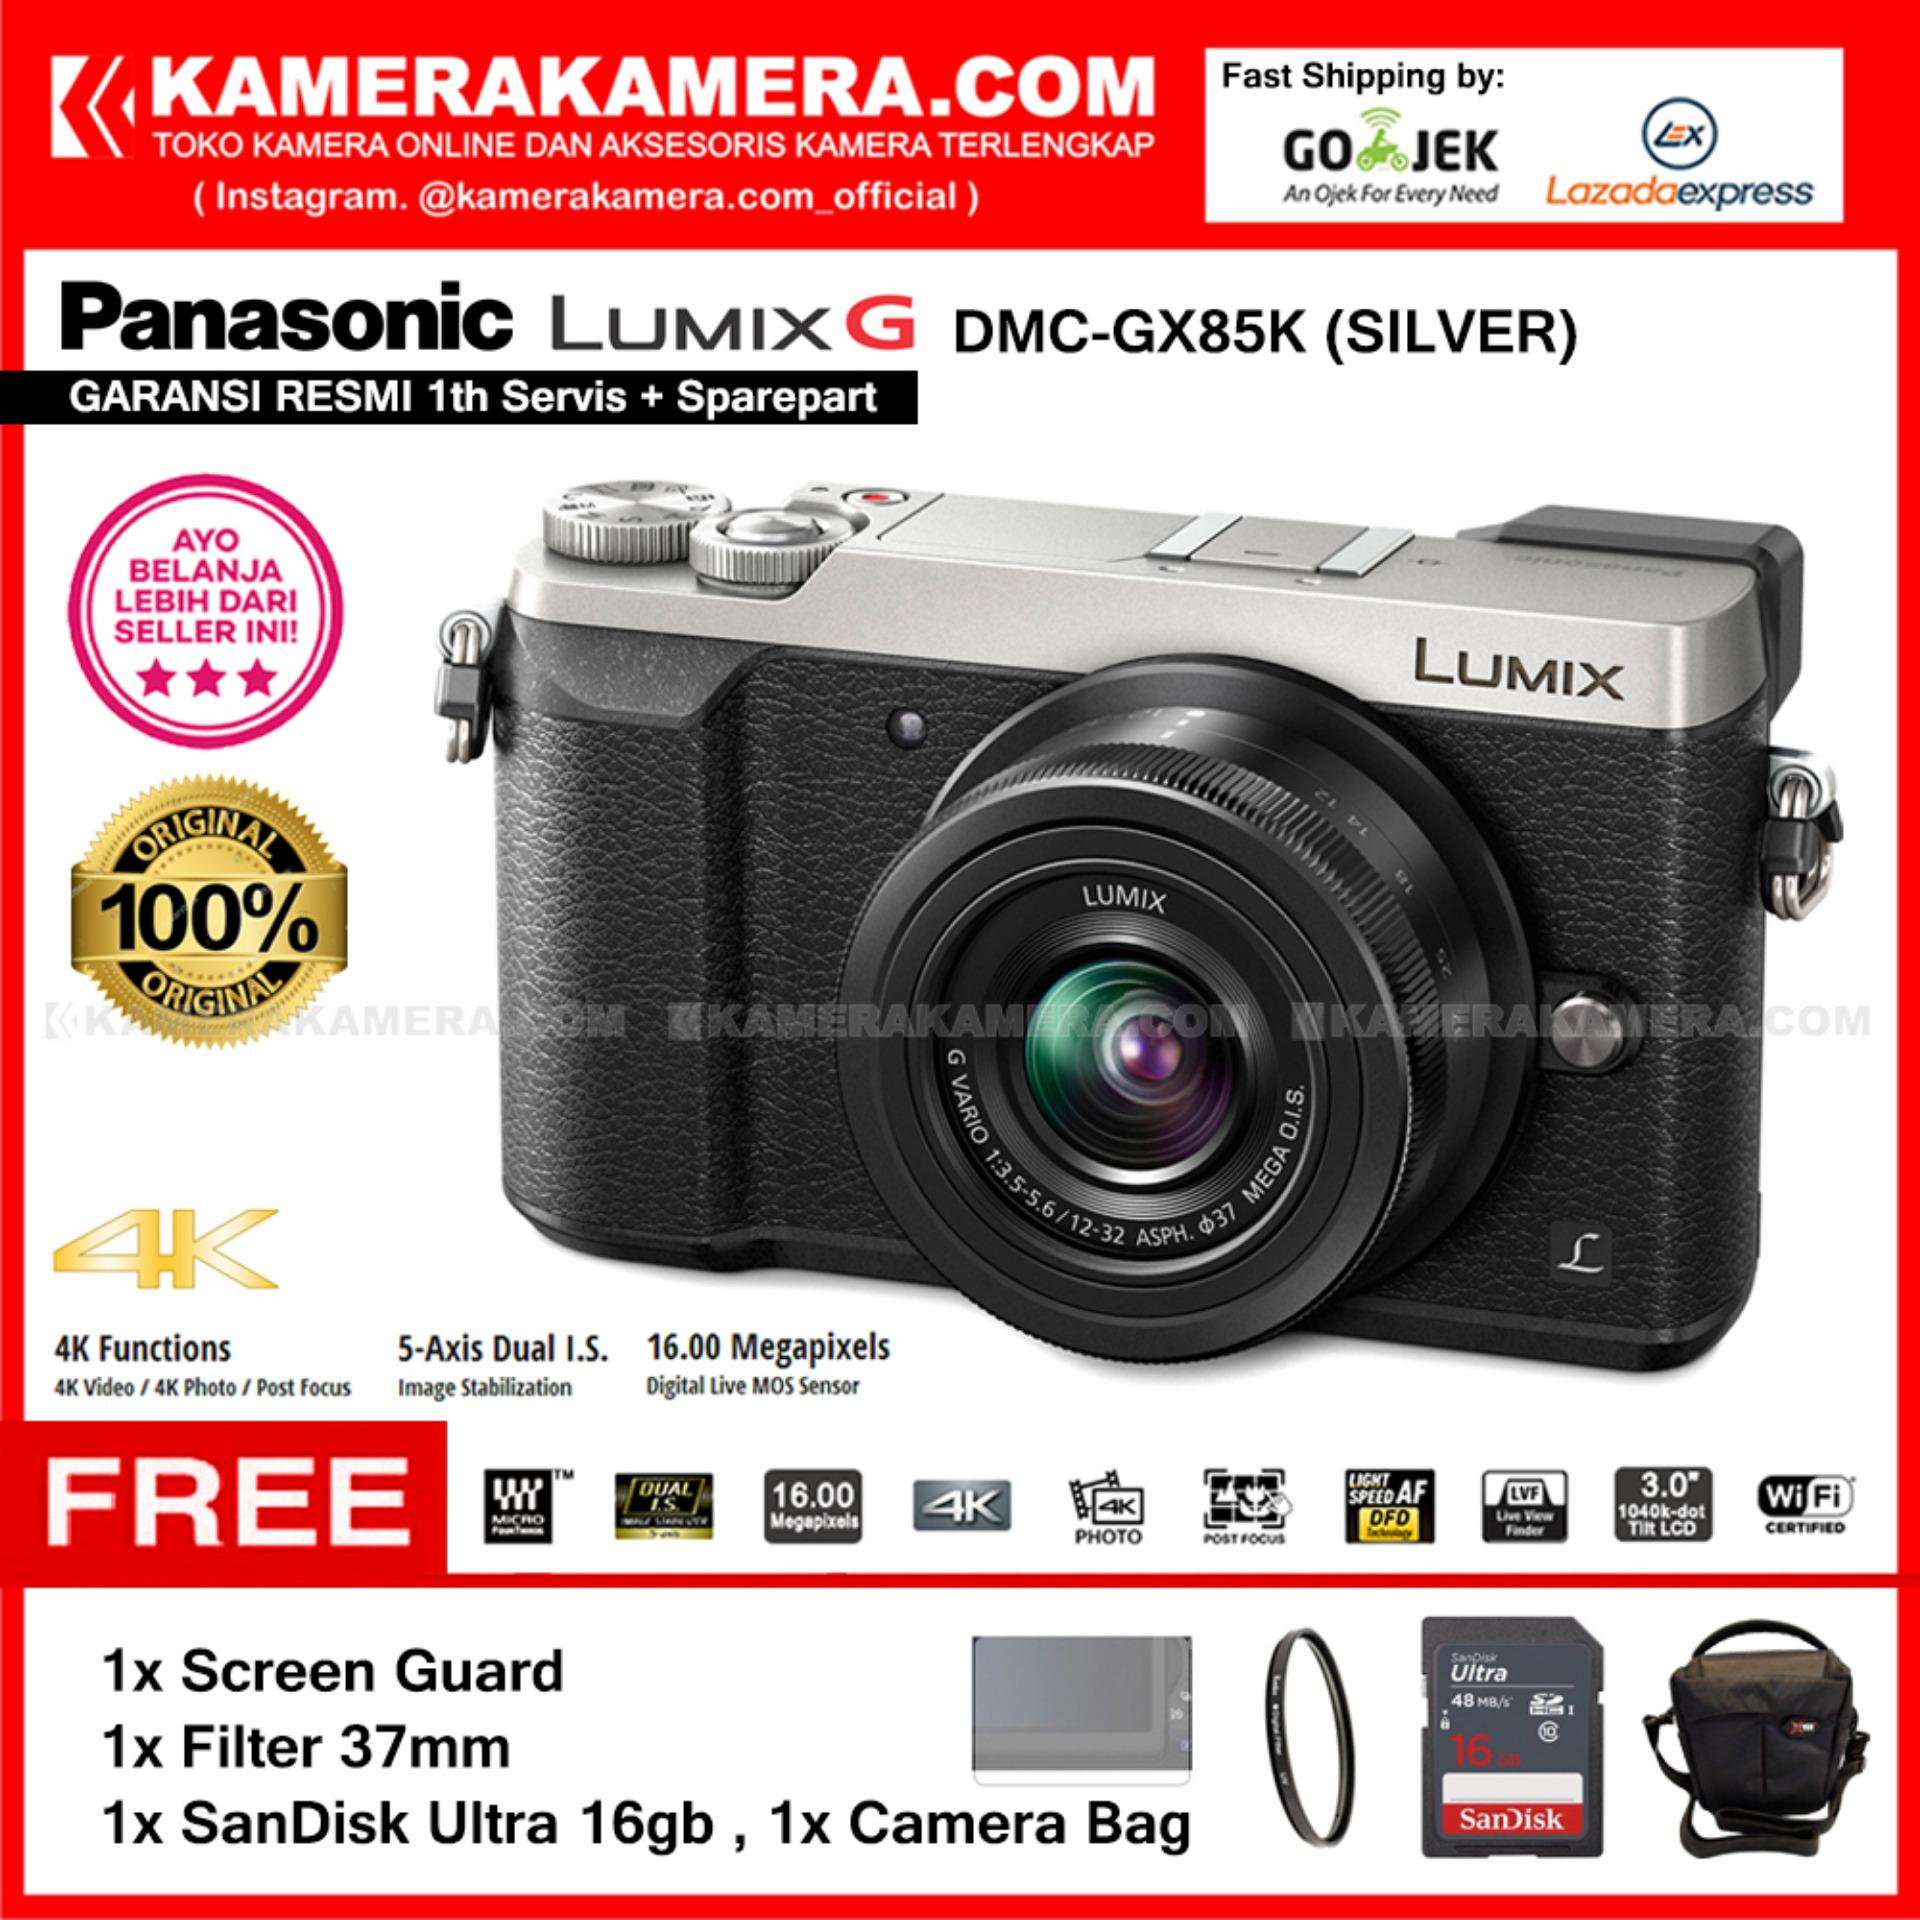 PANASONIC LUMIX DMC-GX85K Kamera Mirrorless GX85 SILVER Kit 12-32mm (Garansi Resmi) Free SanDisk Ultra 16gb + Screen Guard + Filter 37mm + Camera Bag